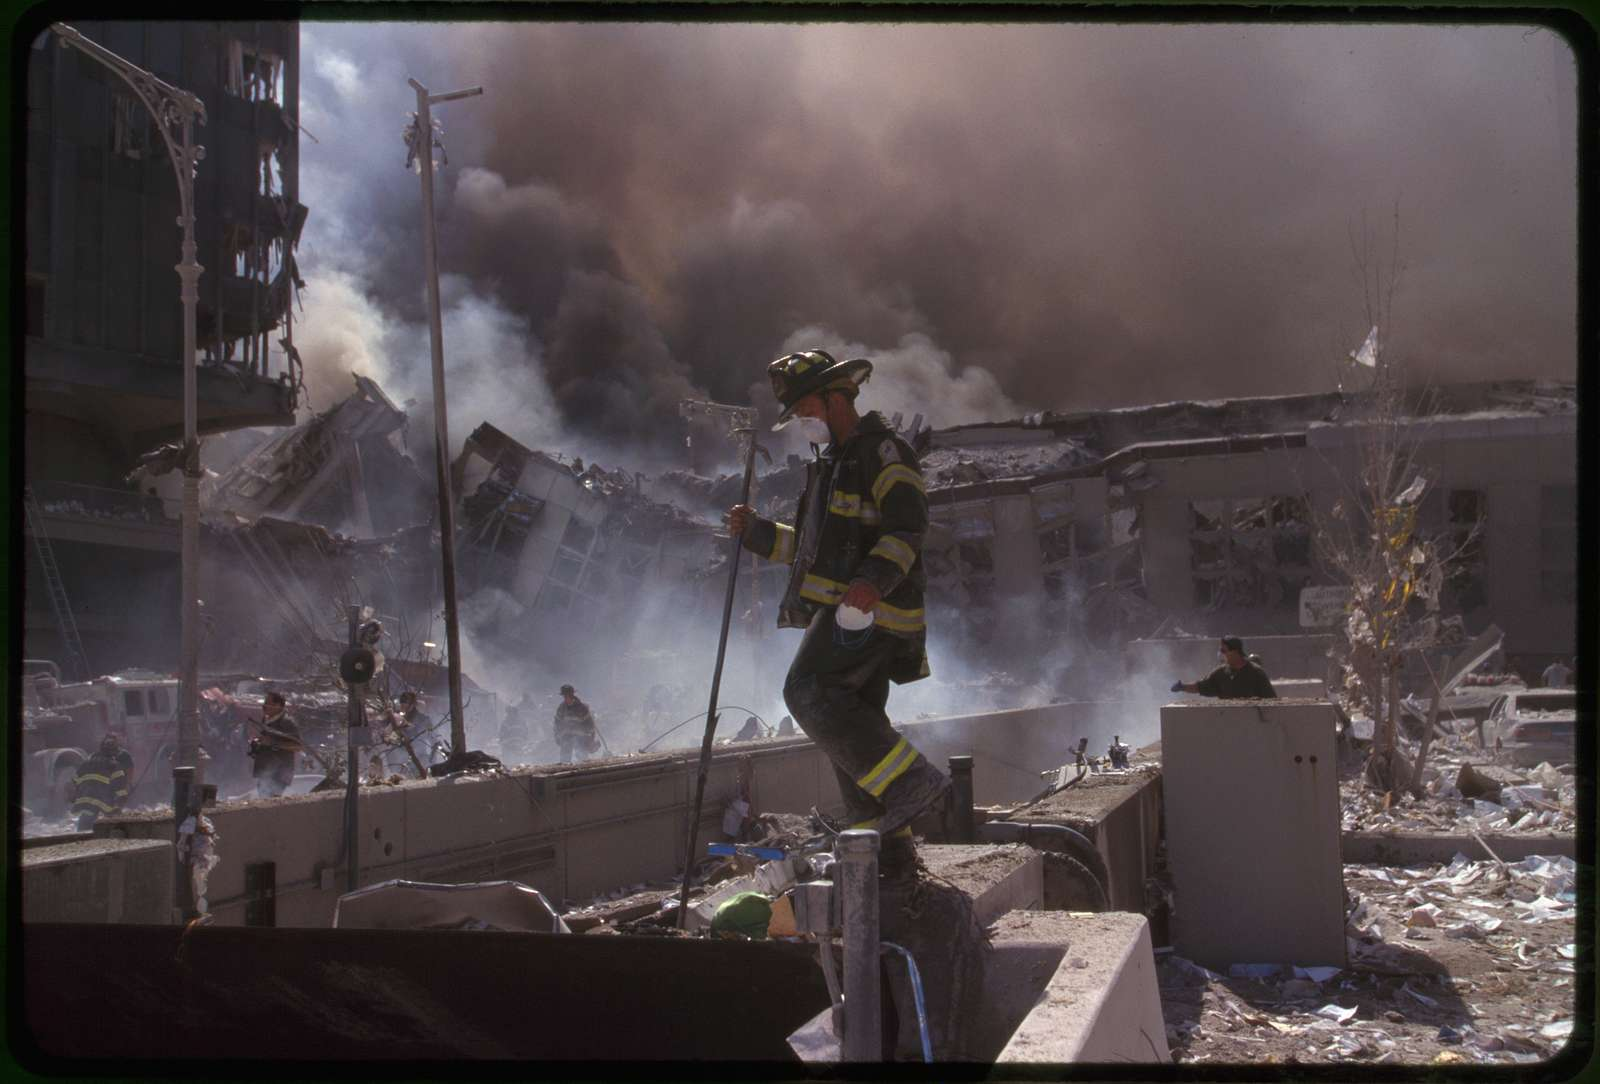 [Fire fighters amid smoking rubble following September 11th terrorist attack on World Trade Center, New York City]